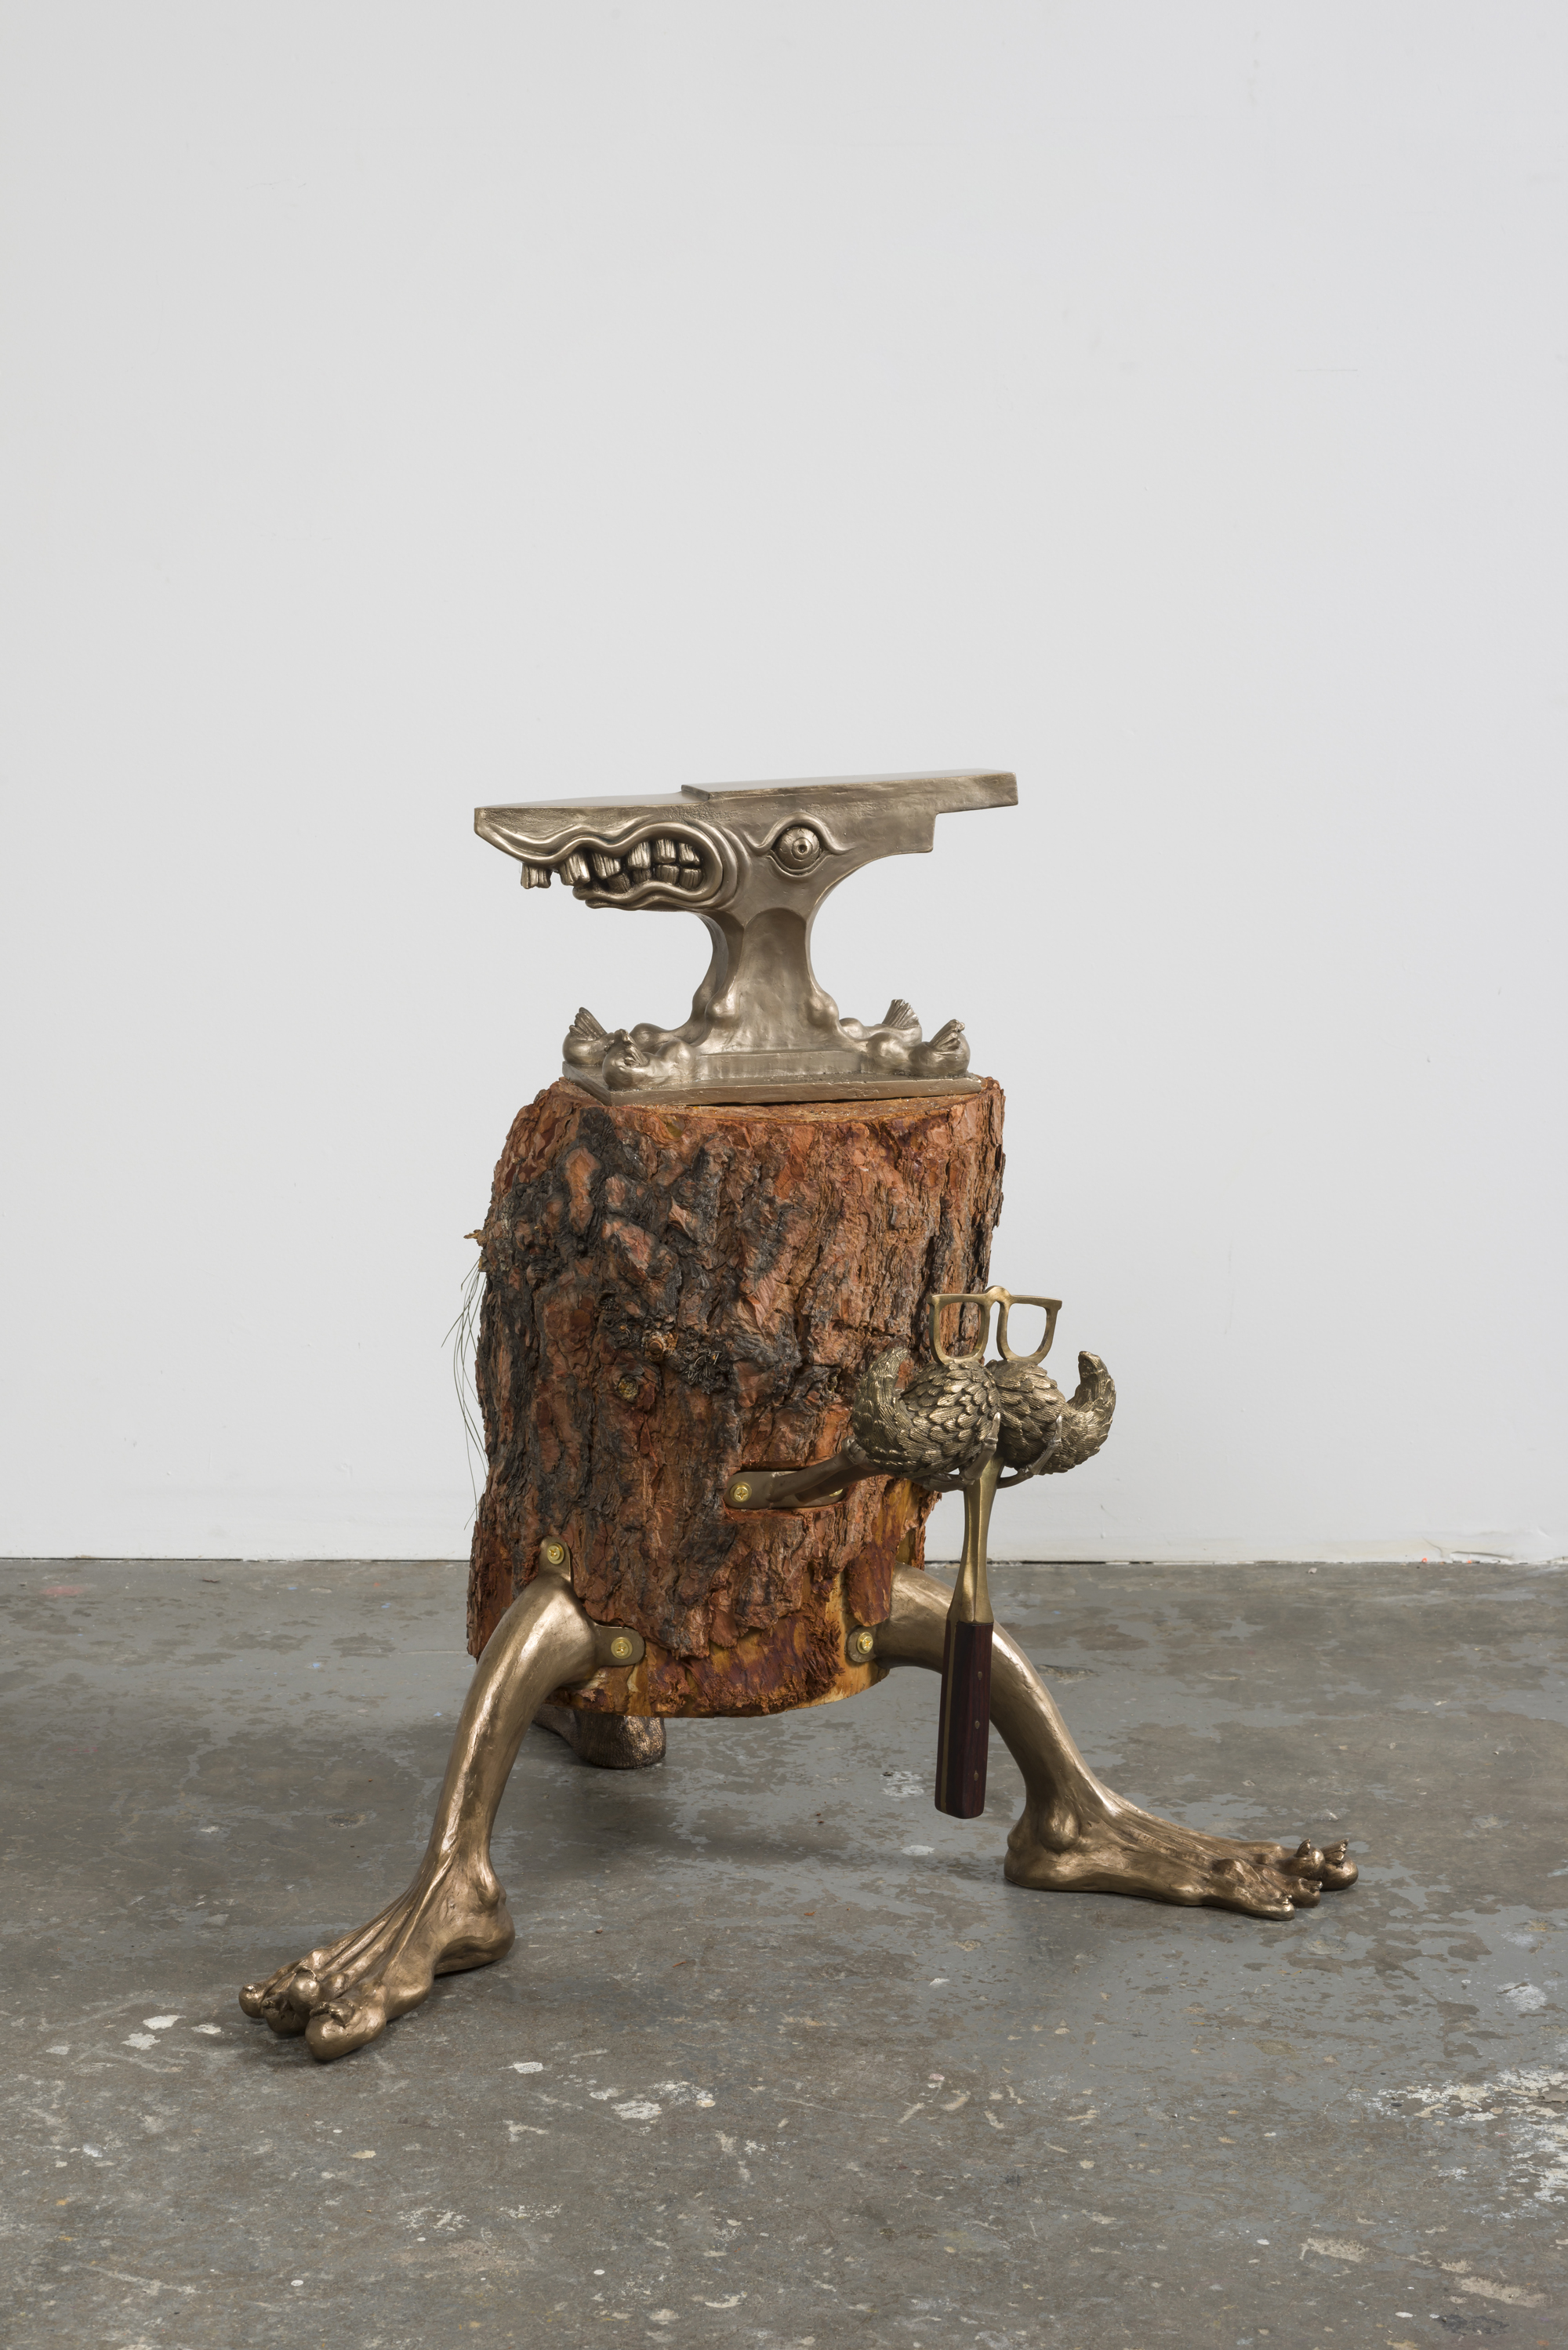 Andrew Sexton  Fantasy Forging Station 3, 2016  Bronze, brass, and wood.  32 x 26 x 26 inches